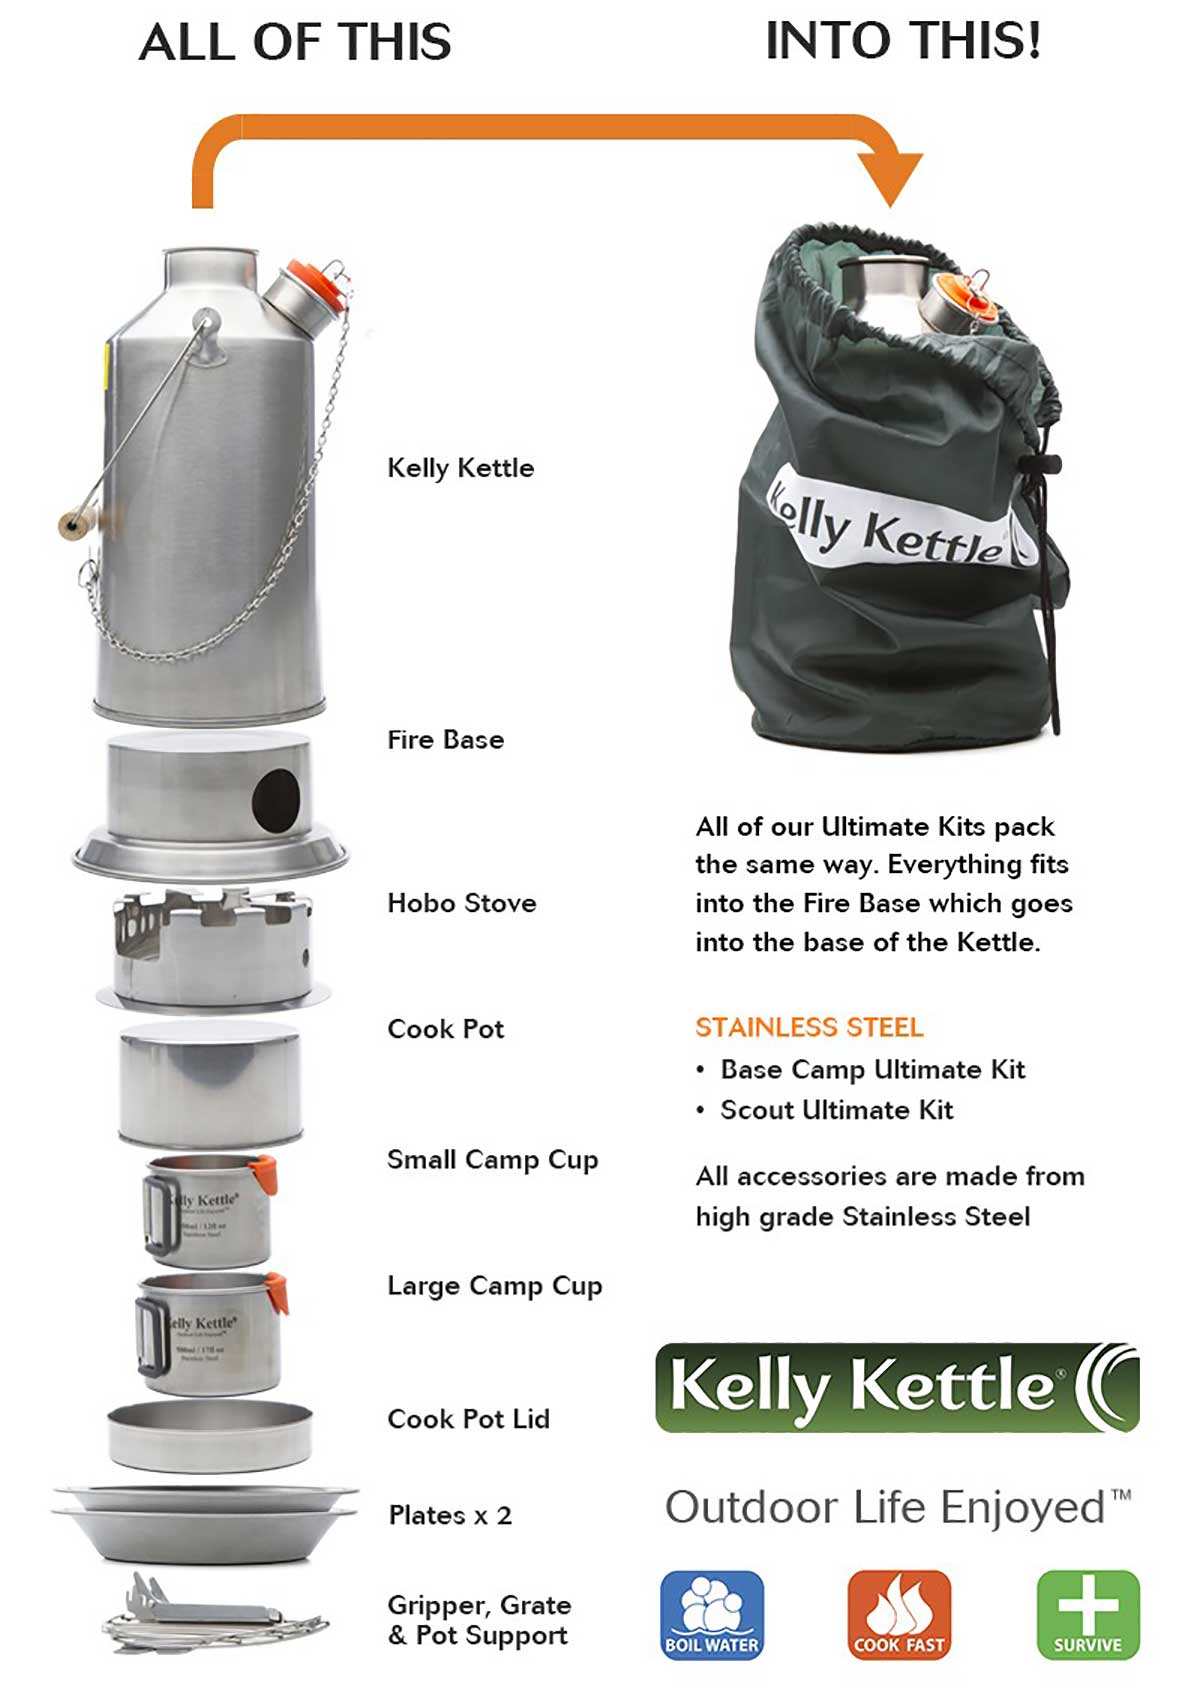 Kelly Kettle Ultimate Base Camp overview